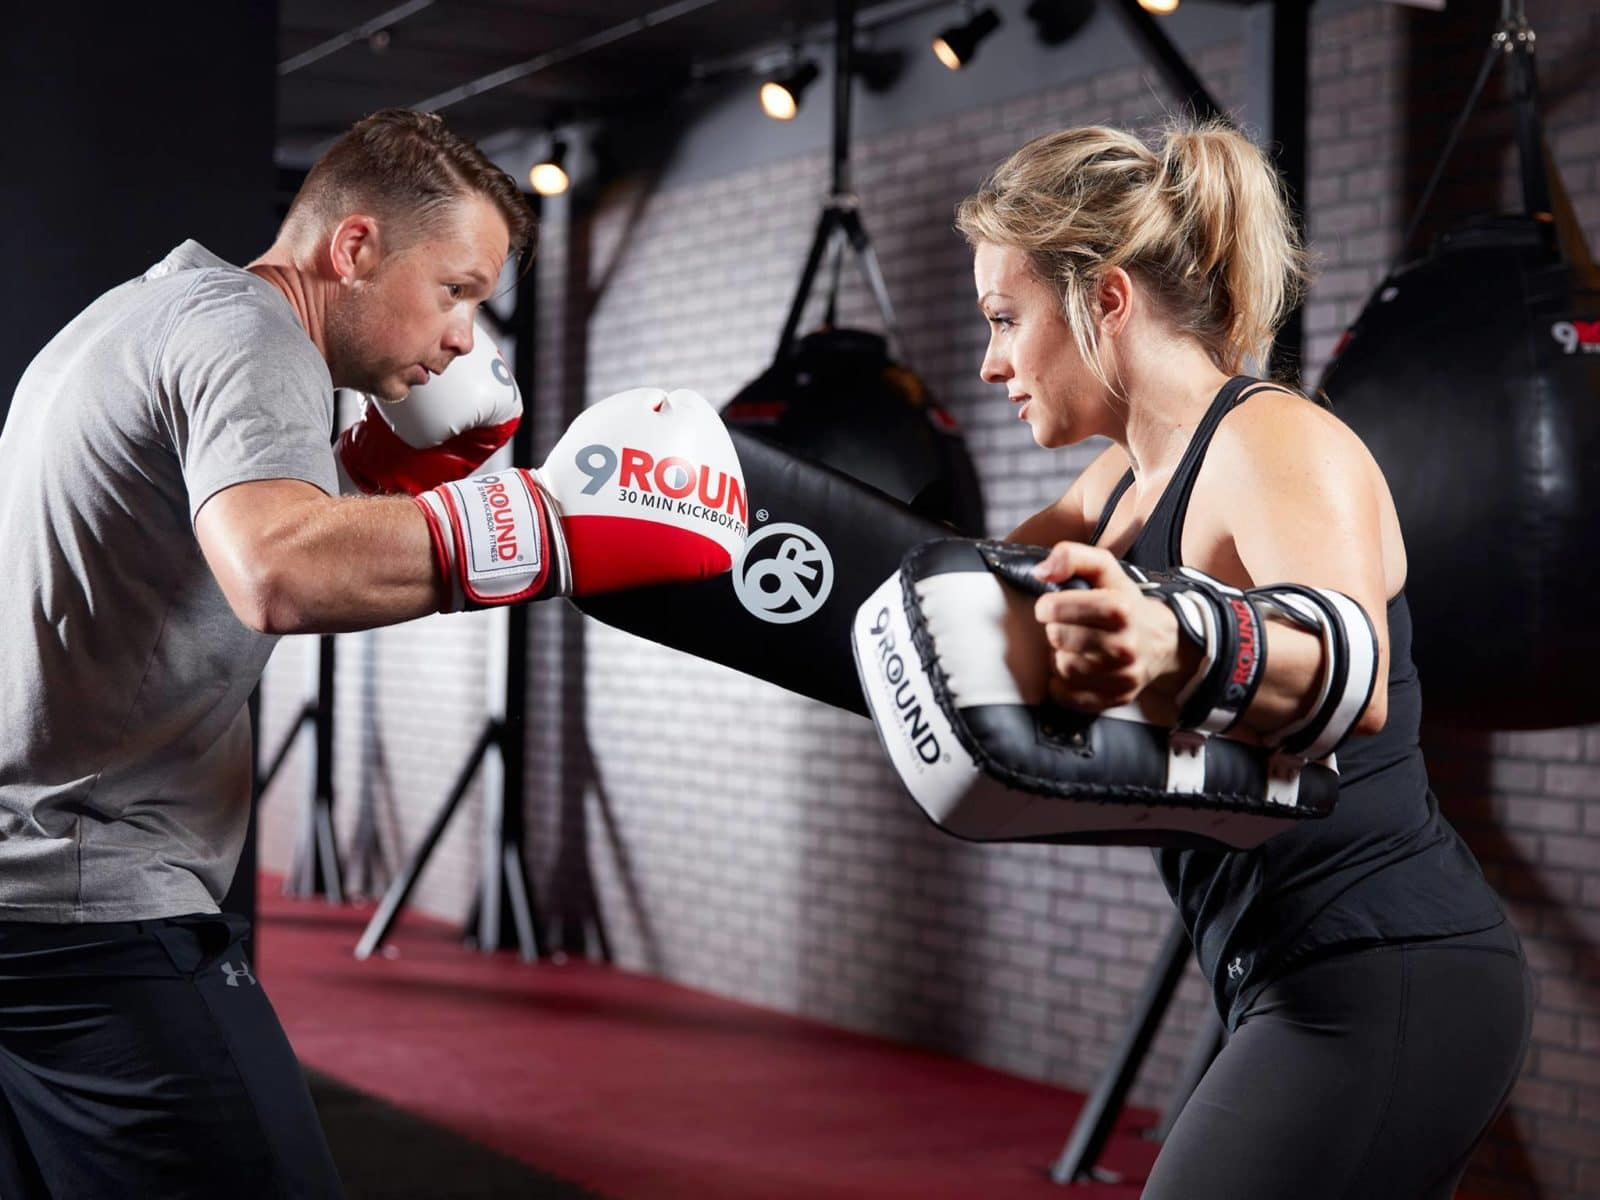 Instructor and student boxing at 9Round gym in Decatur, GA.